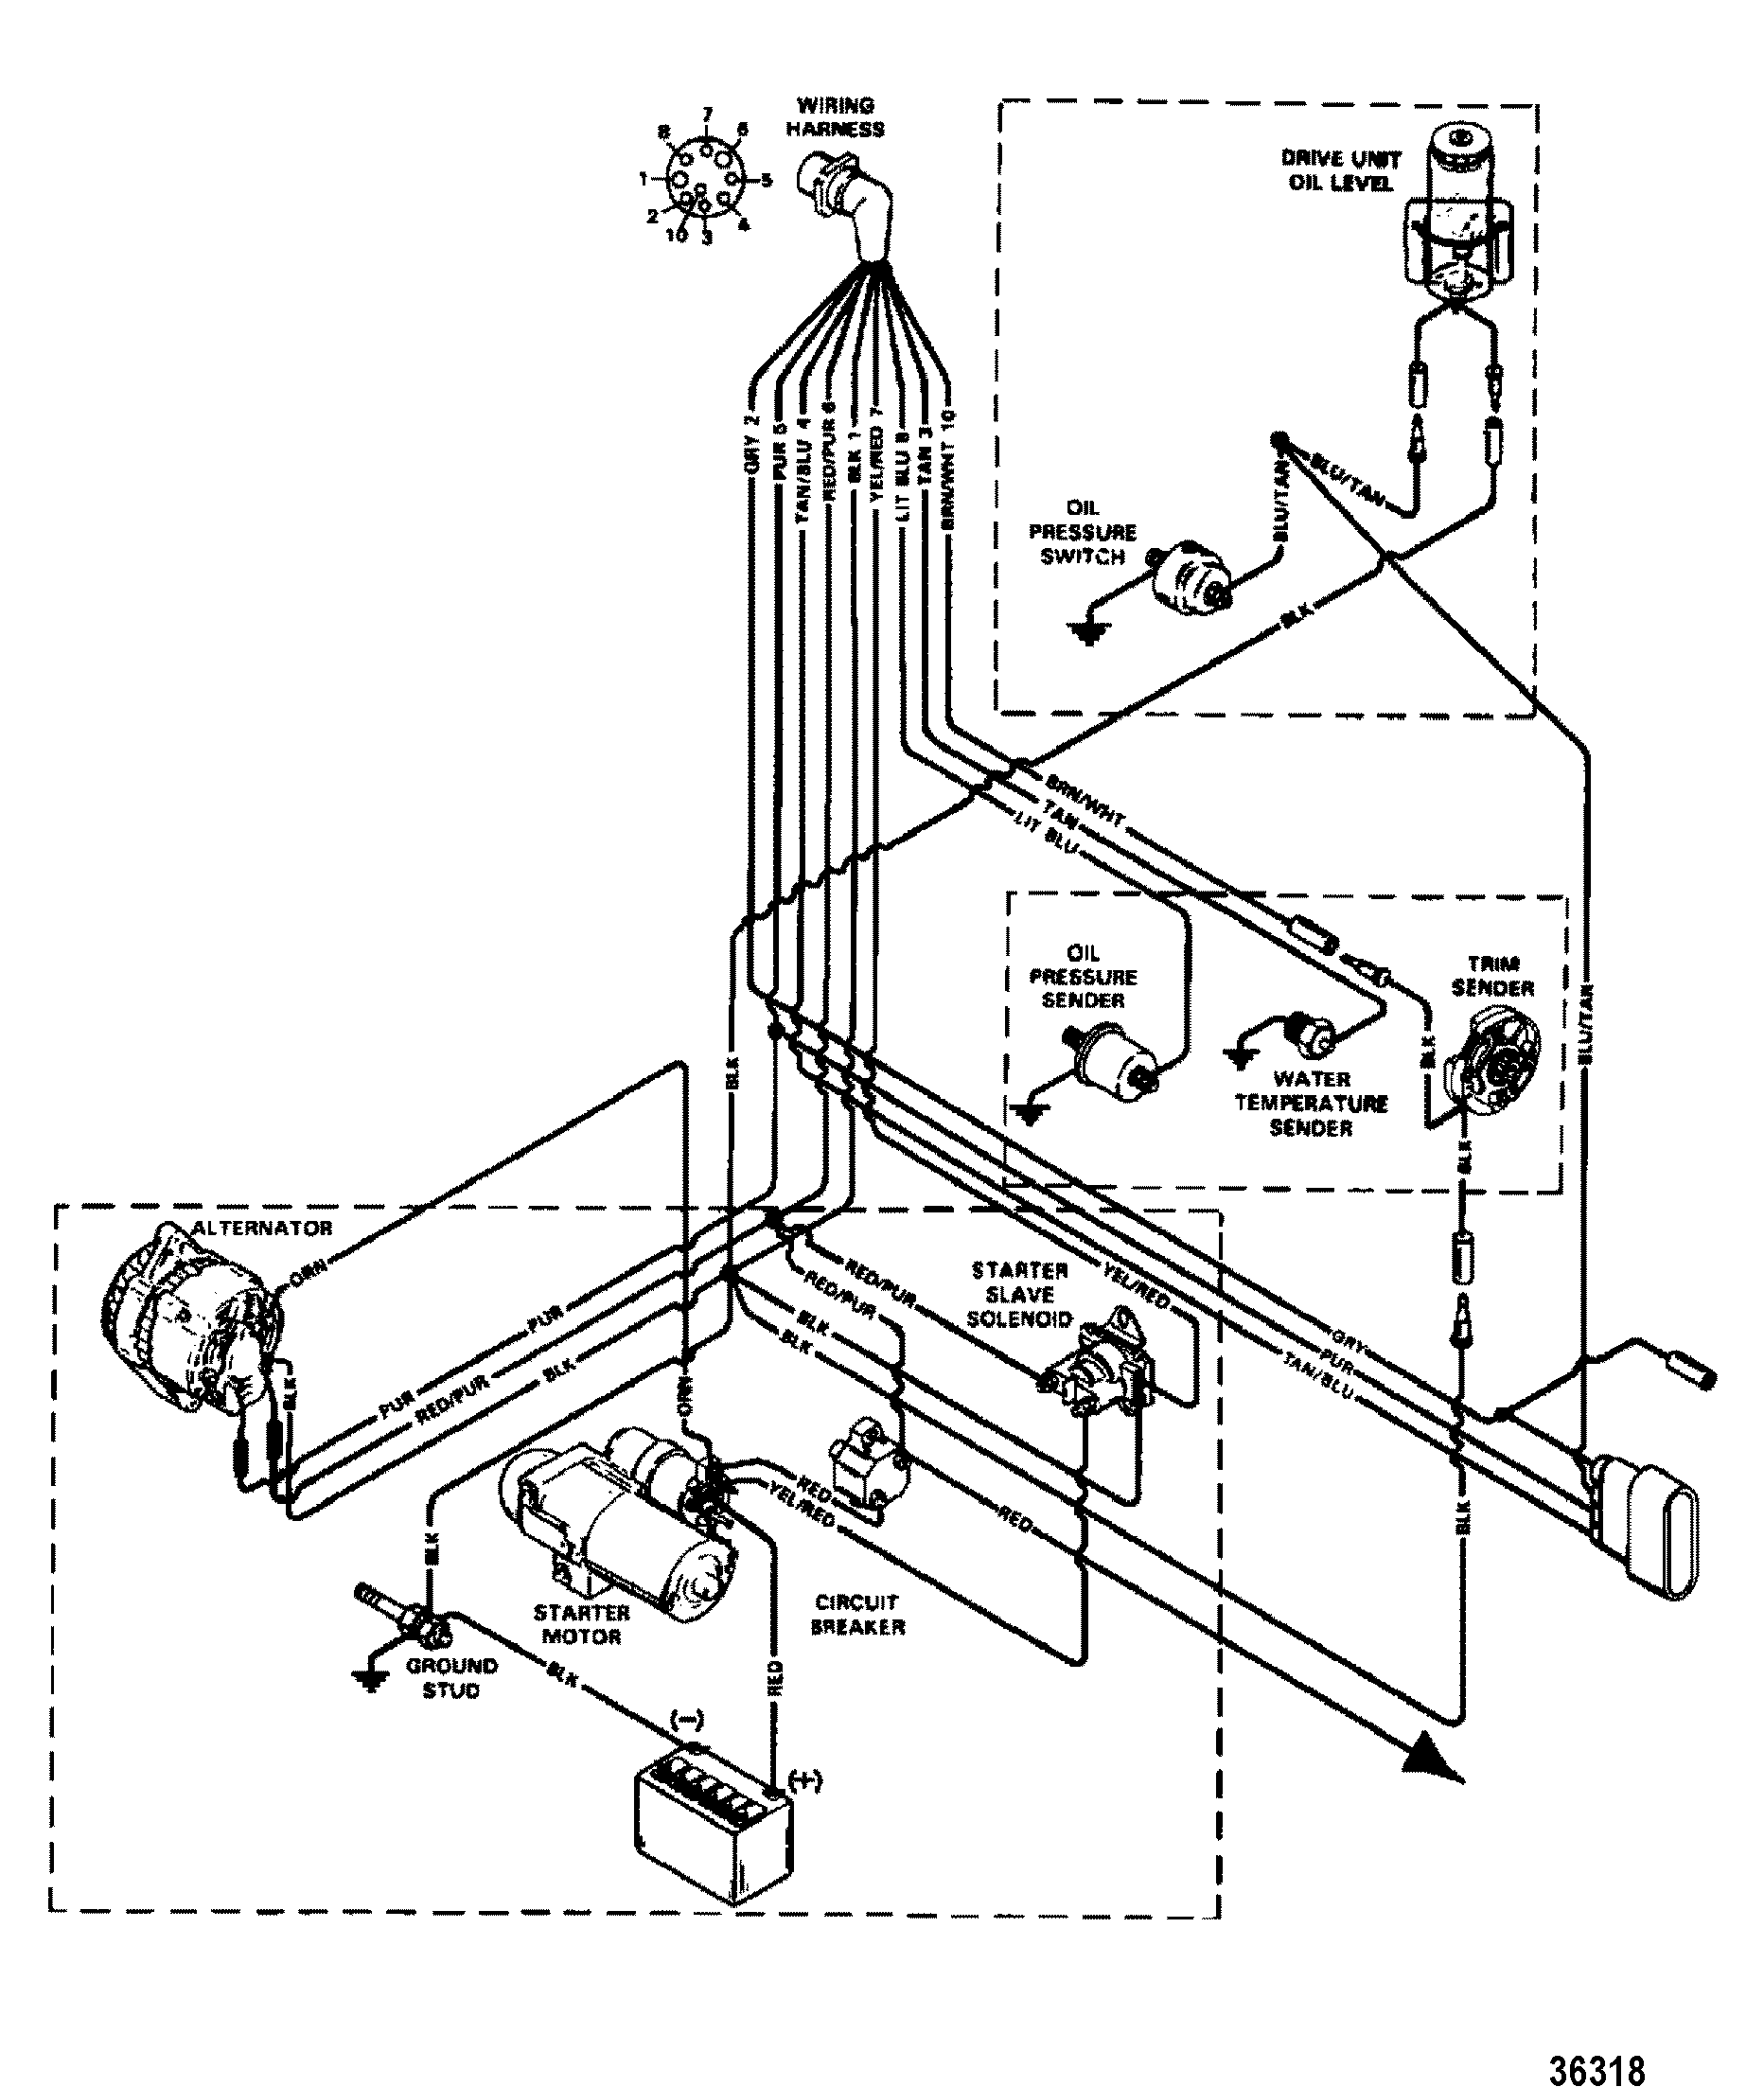 1982 Mercruiser Engine Wiring Schematic : 39 Wiring